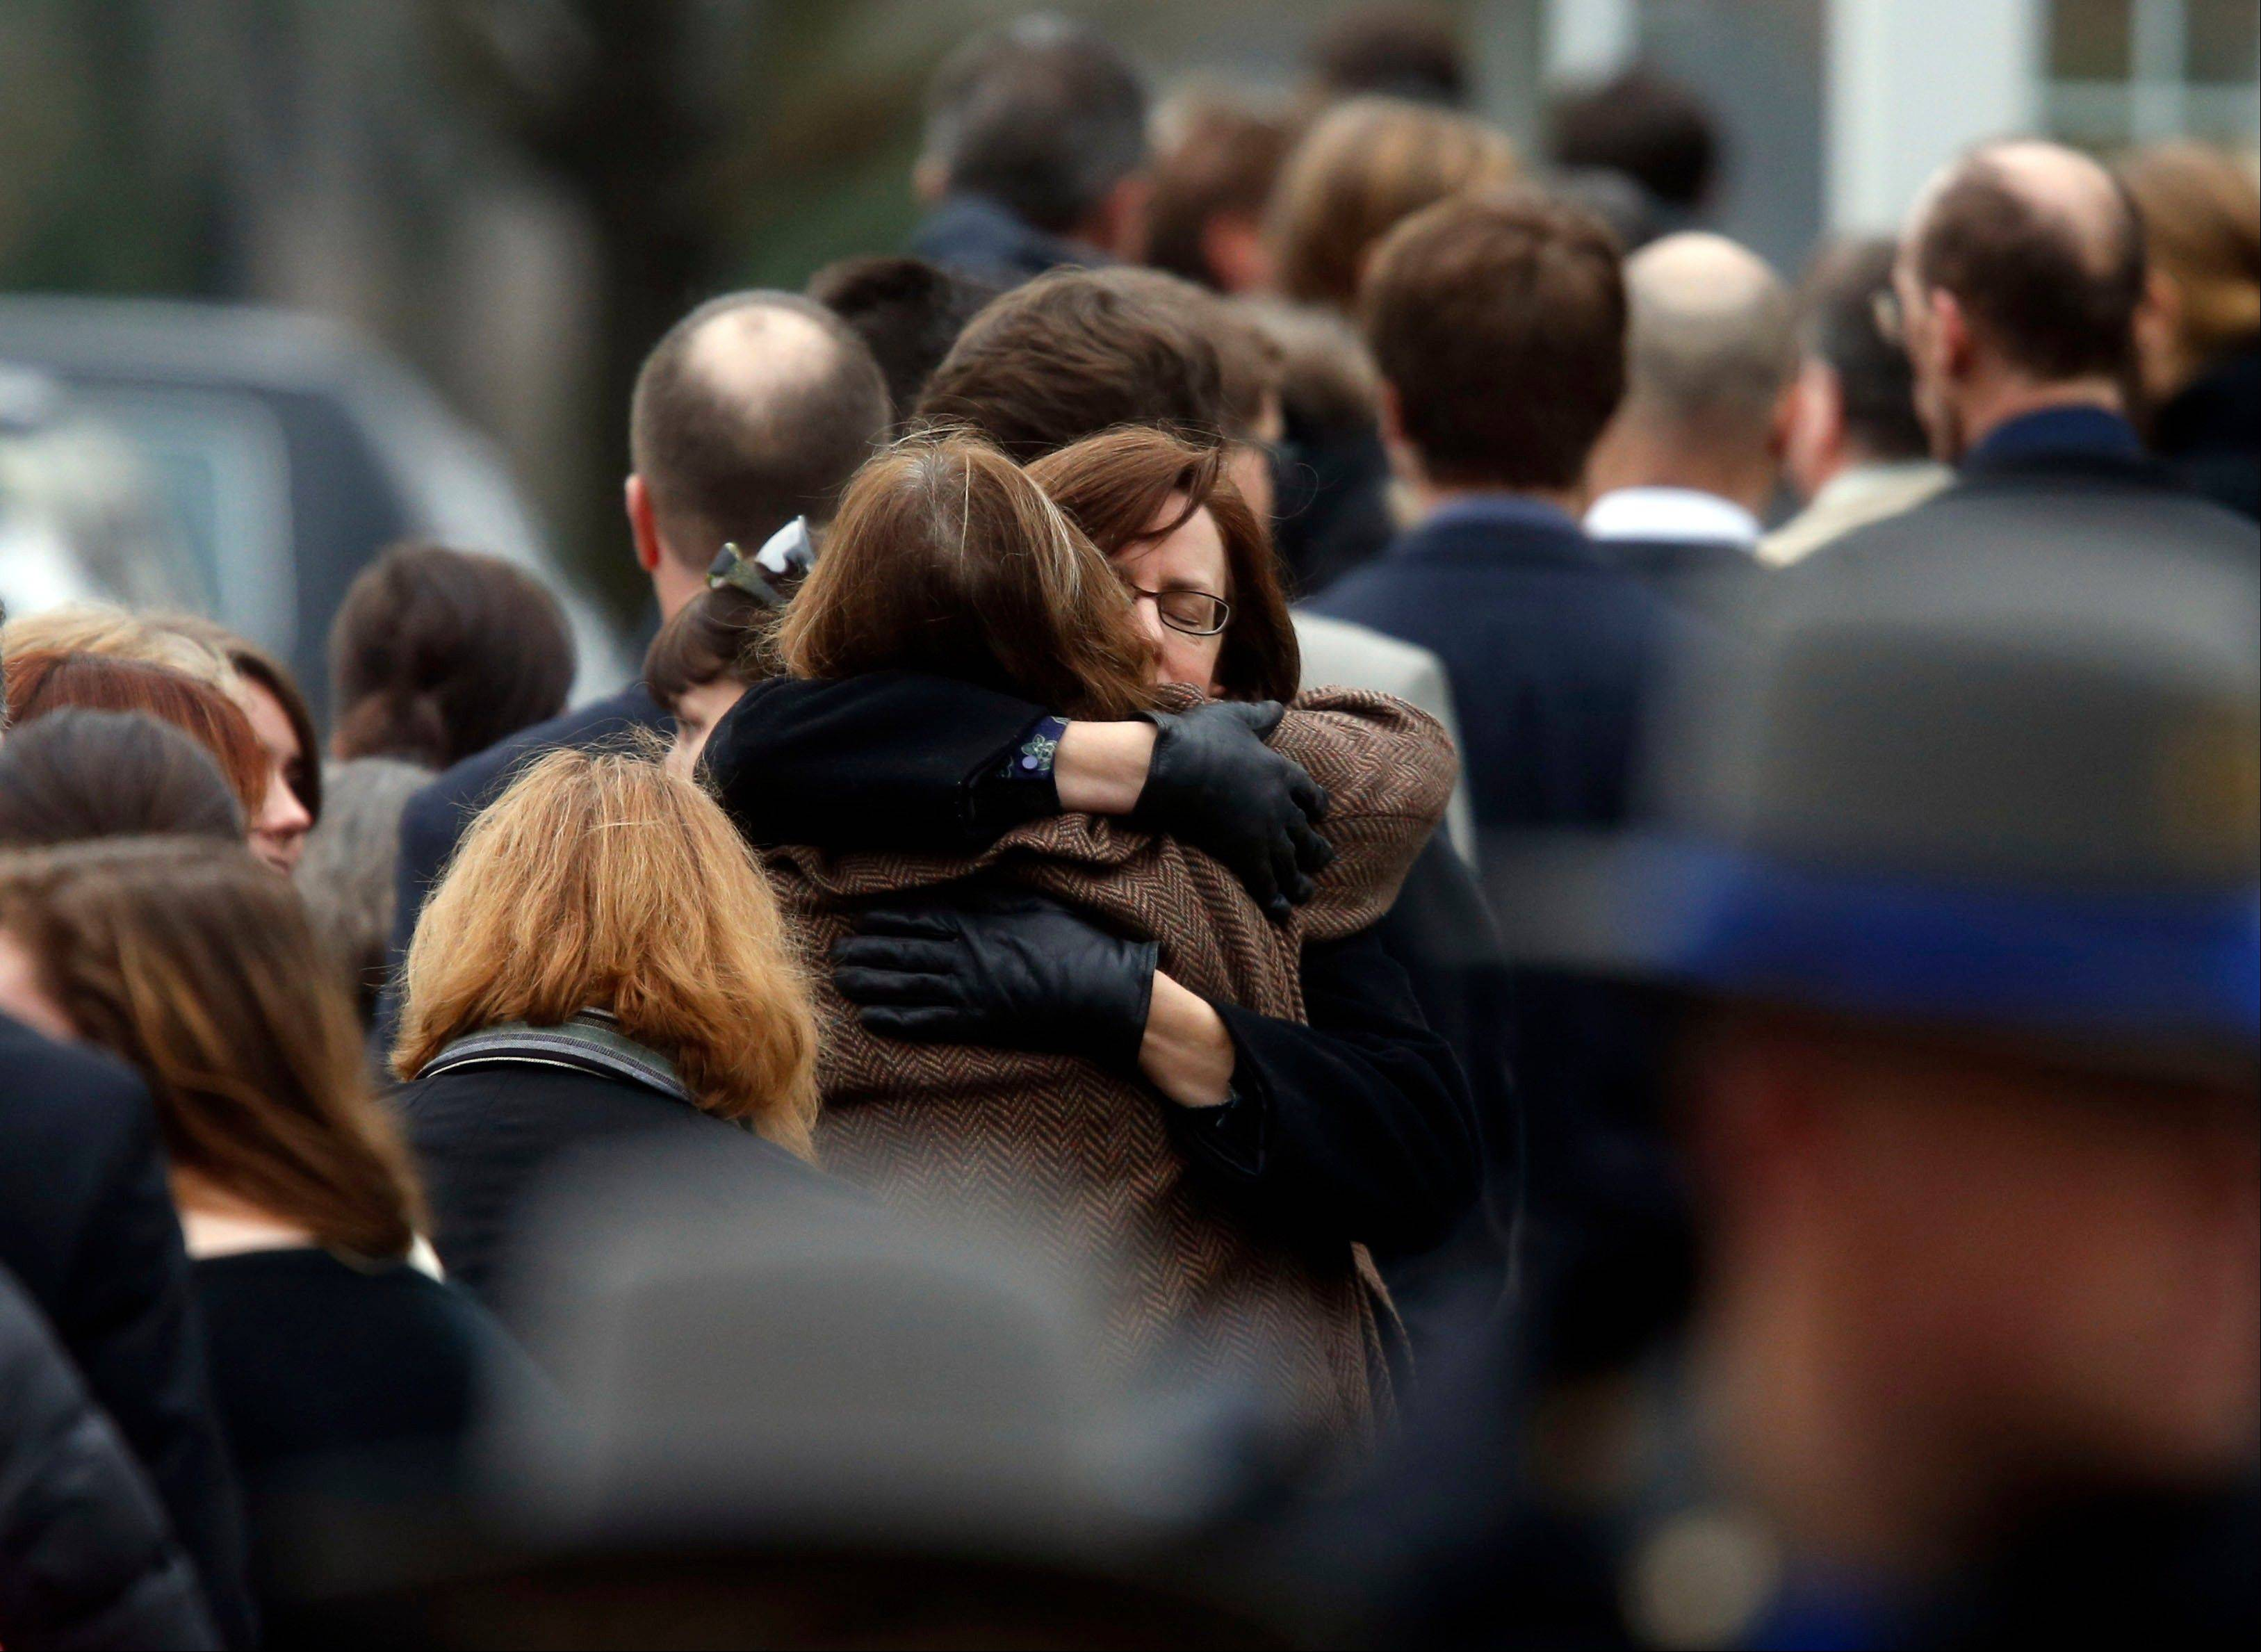 Mourners arrive at a funeral service for 6-year-old Noah Pozner on Monday in Fairfield, Conn. Pozner was killed when a gunman walked into Sandy Hook Elementary School in Newtown Friday and opened fire, killing 26 people, including 20 children.